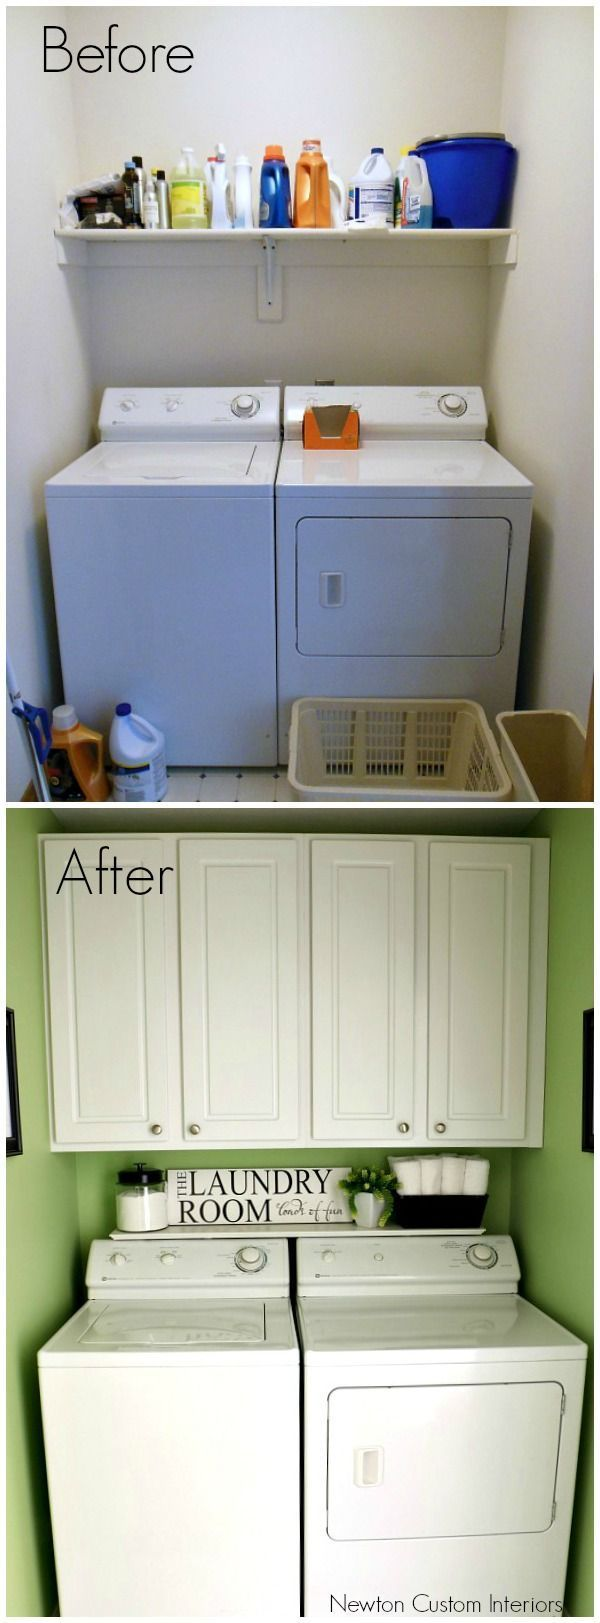 Diy Laundry Room Decor 17 Best Ideas About Small Laundry Rooms On Pinterest Laundry